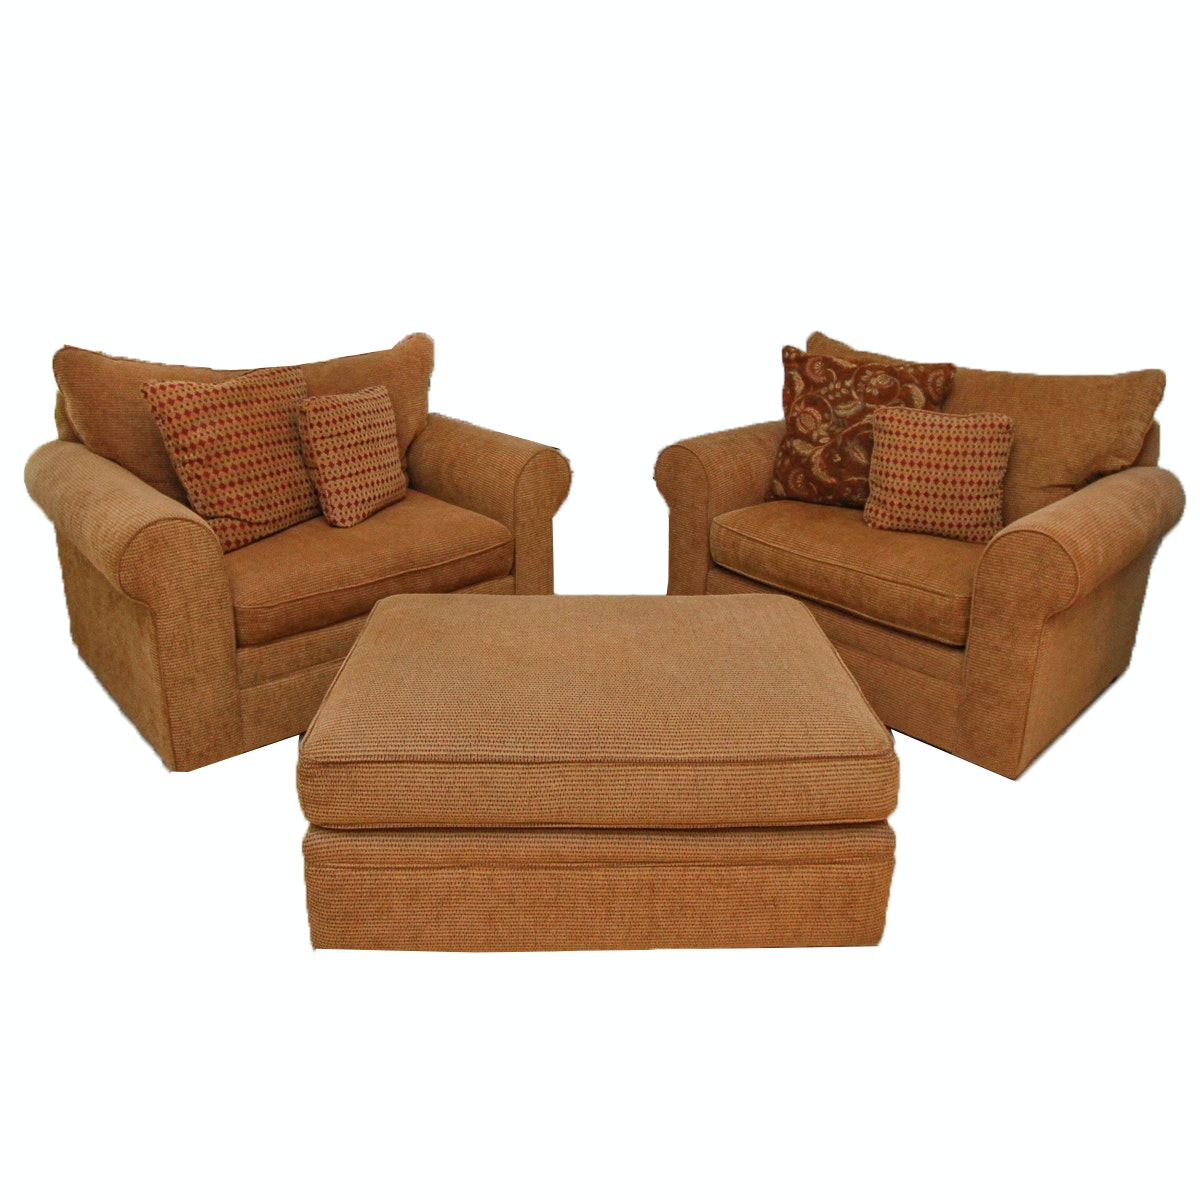 Pair of Sofa Chairs and Ottoman by Craftmaster Furniture